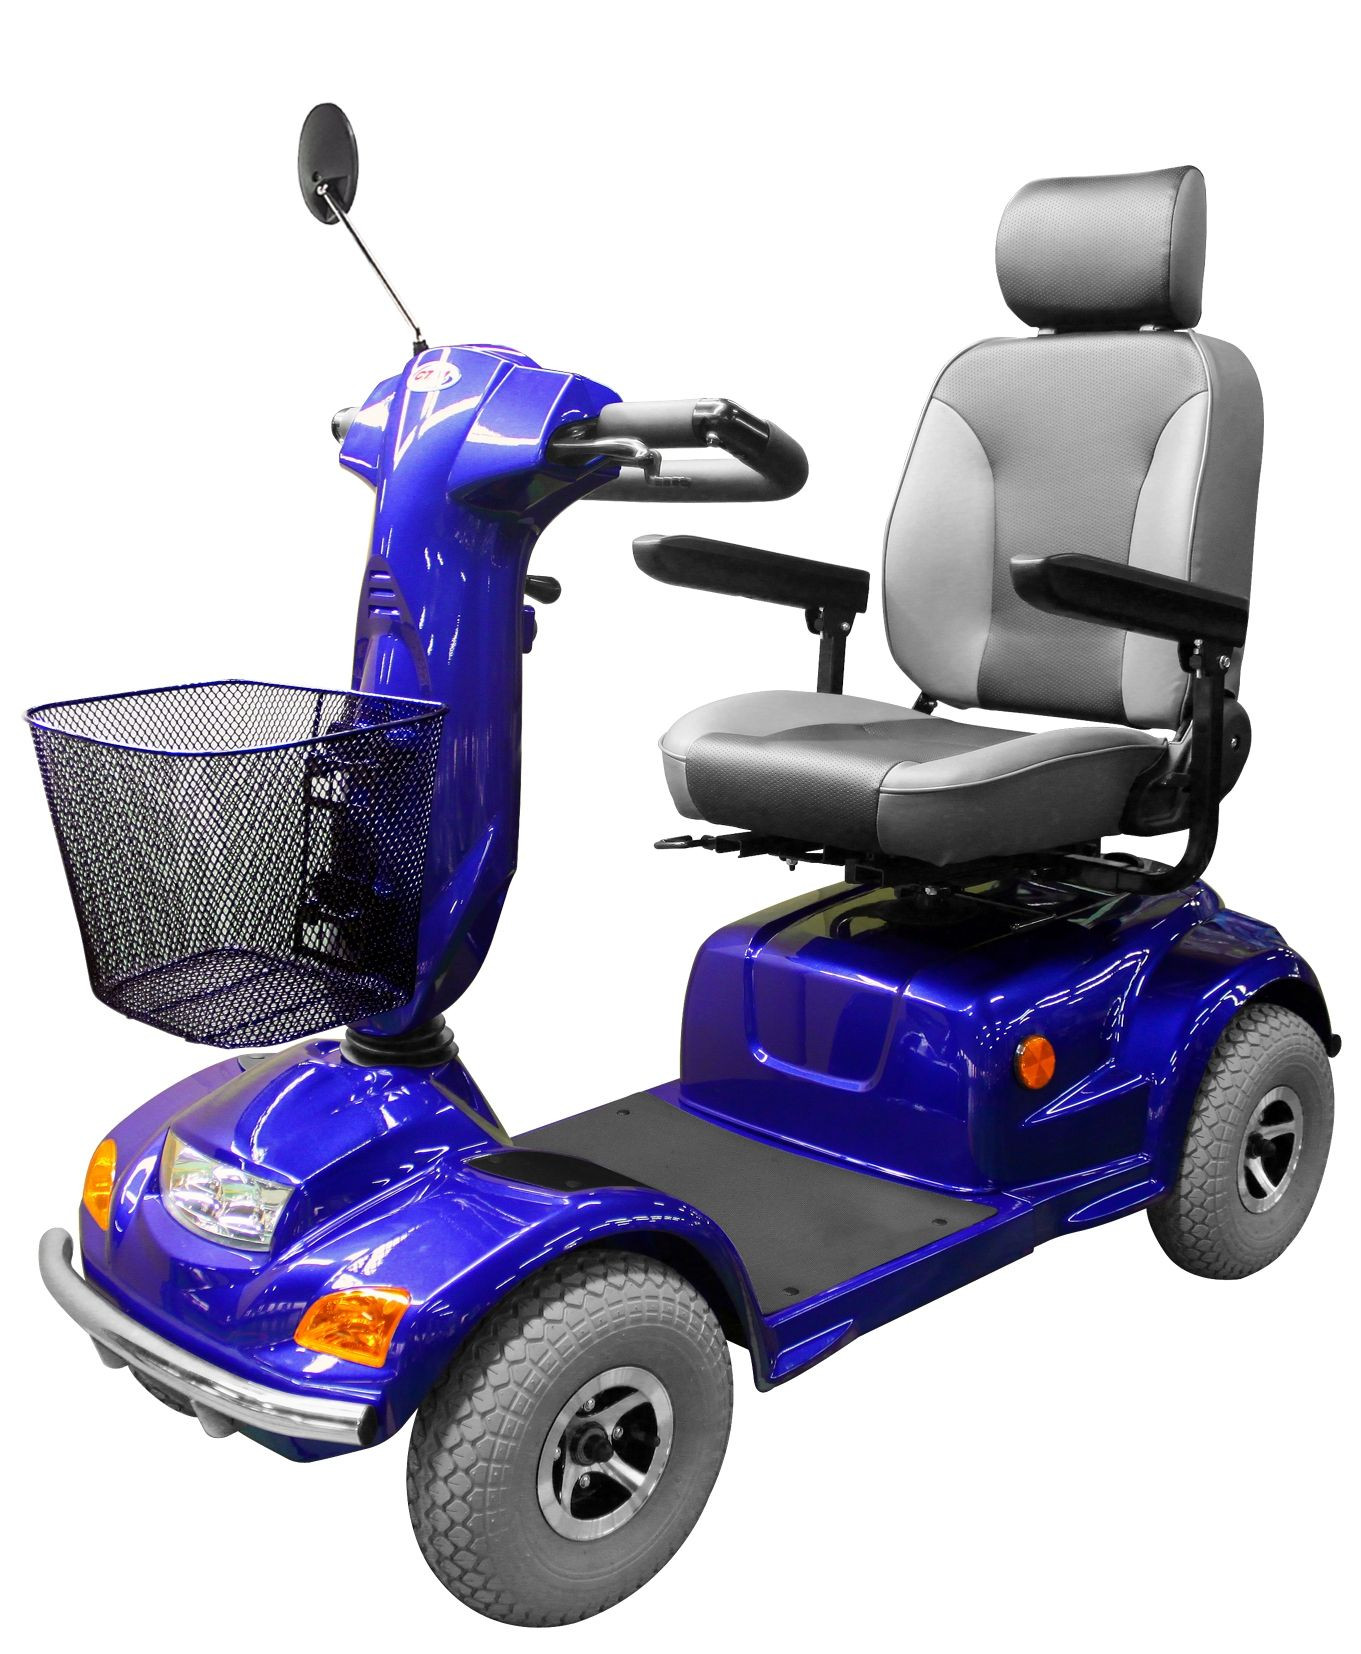 ctm hs 890 mobility scooter for sale lowest prices. Black Bedroom Furniture Sets. Home Design Ideas